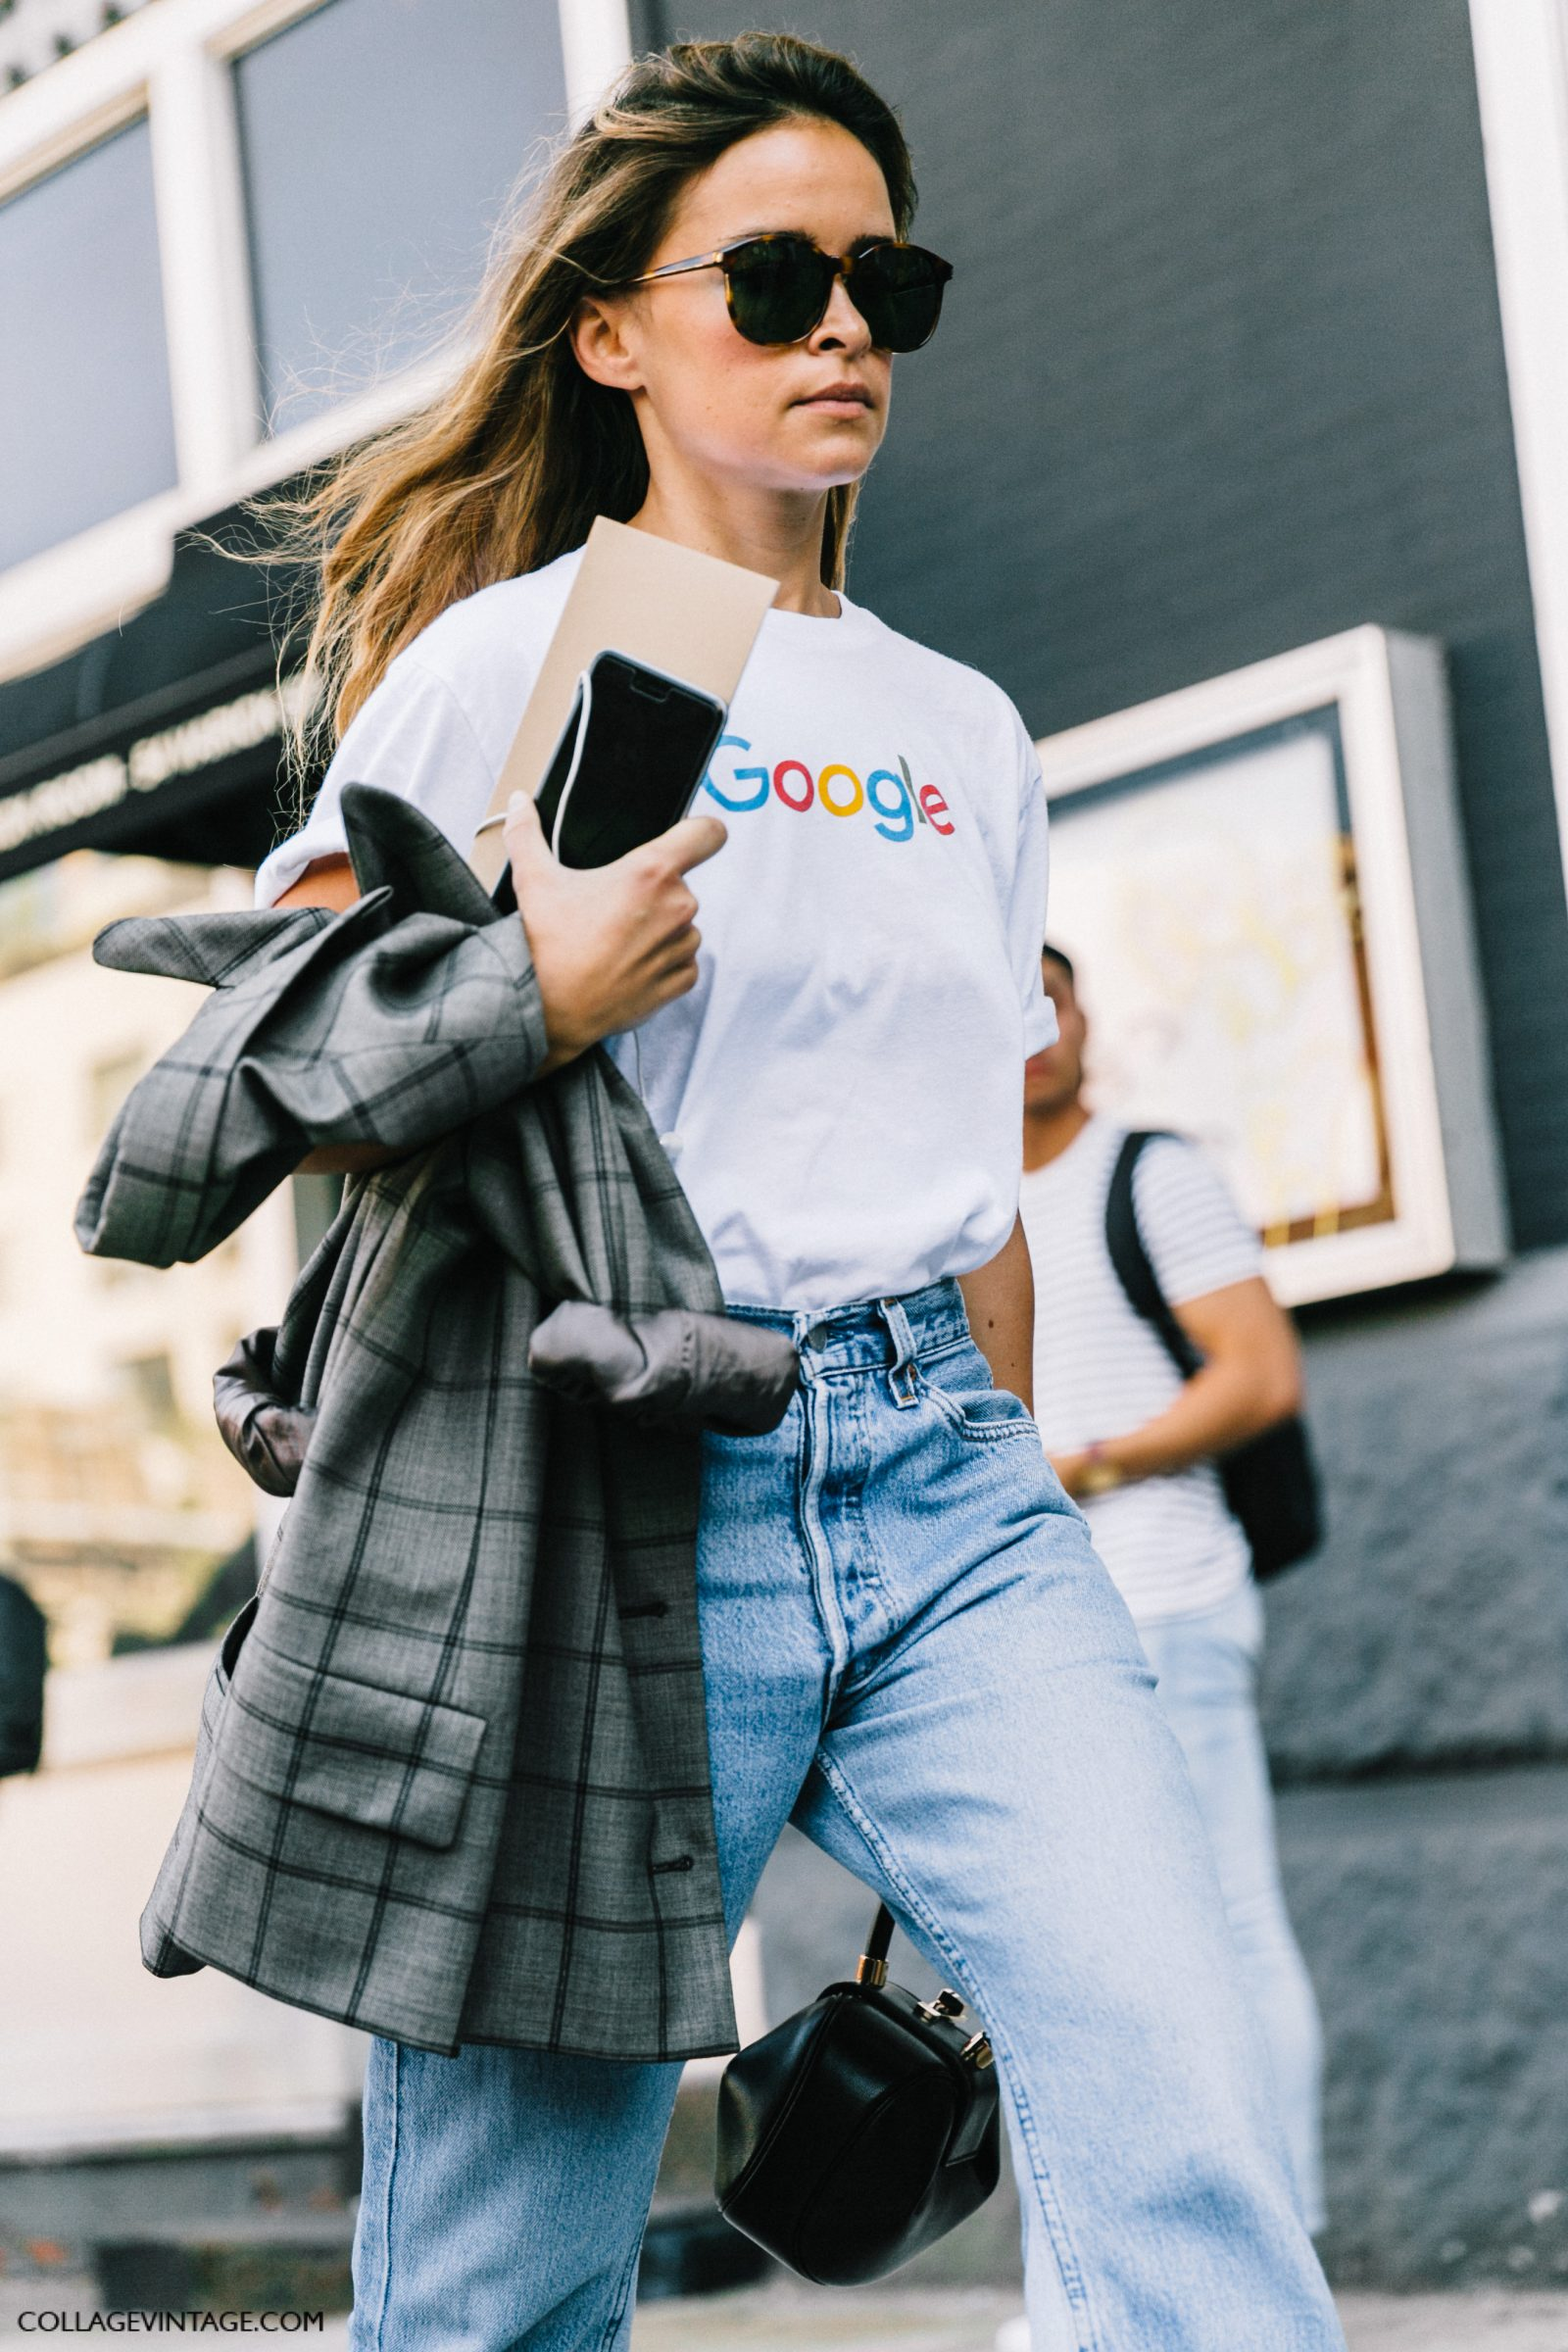 nyfw-new_york_fashion_week_ss17-street_style-outfits-collage_vintage-vintage-del_pozo-michael_kors-hugo_boss-63